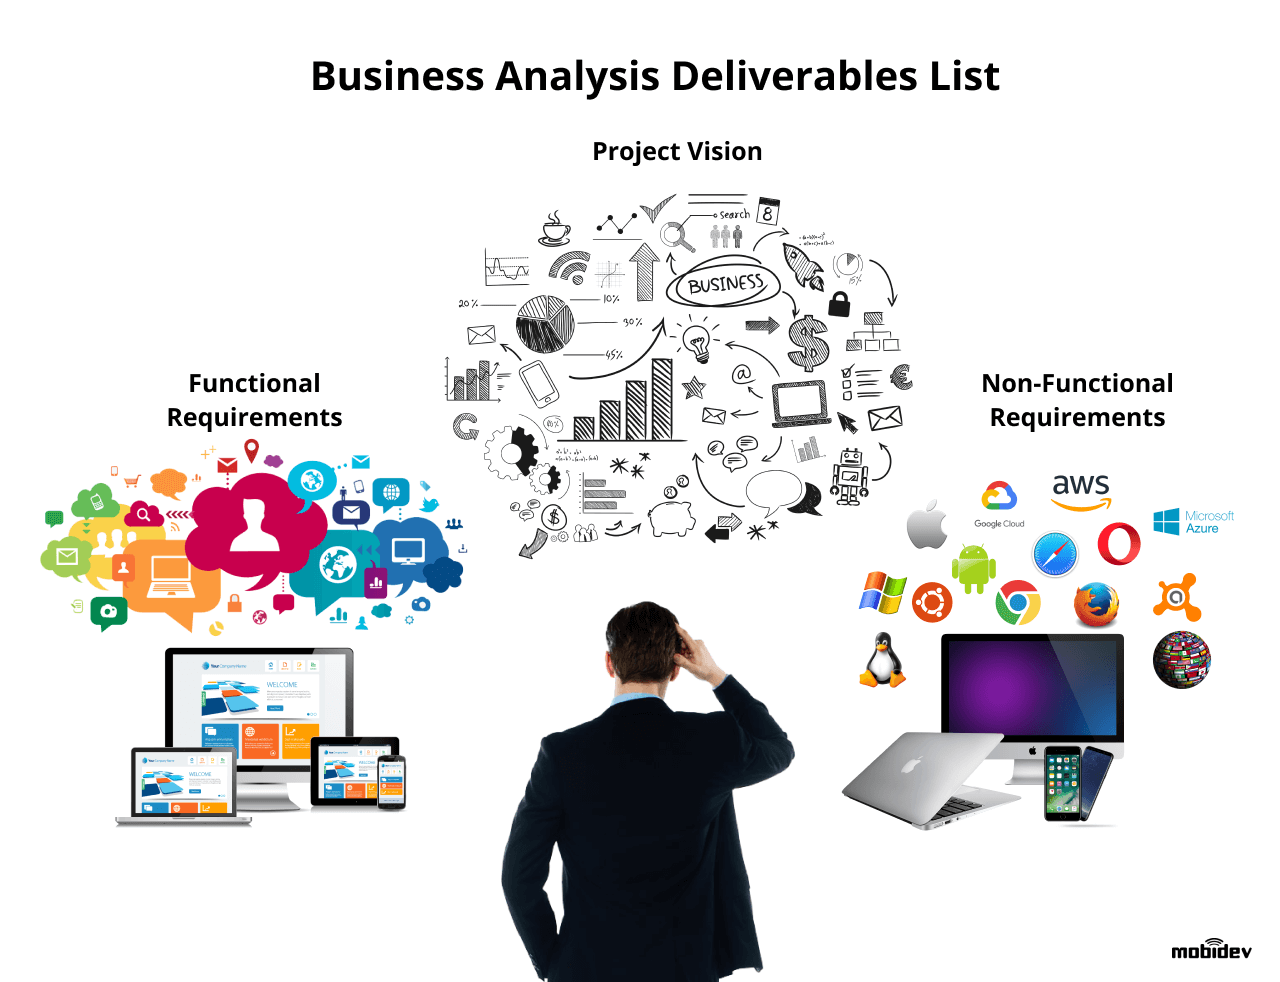 Business analysis deliverables list